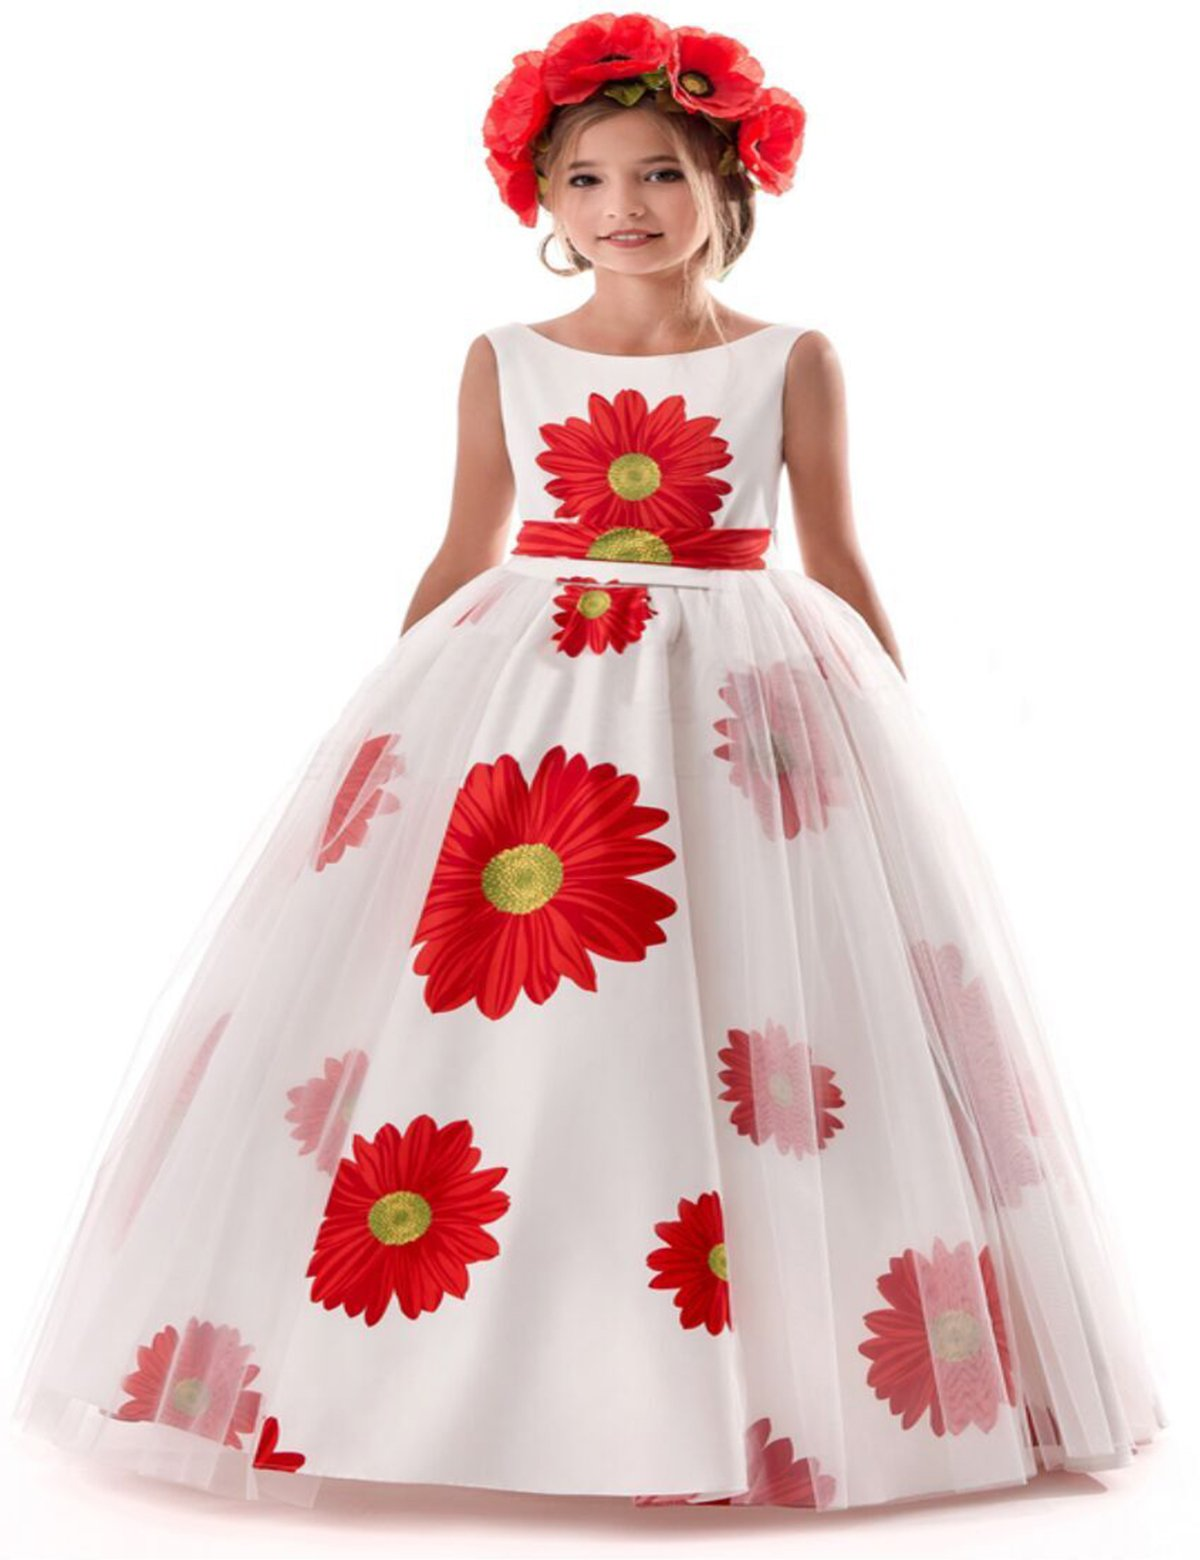 TTYAOVO Girls Pageant Princess Flower Printing Dress Kids Prom Puffy Tulle Ball Gowns Size 12-13 Years White